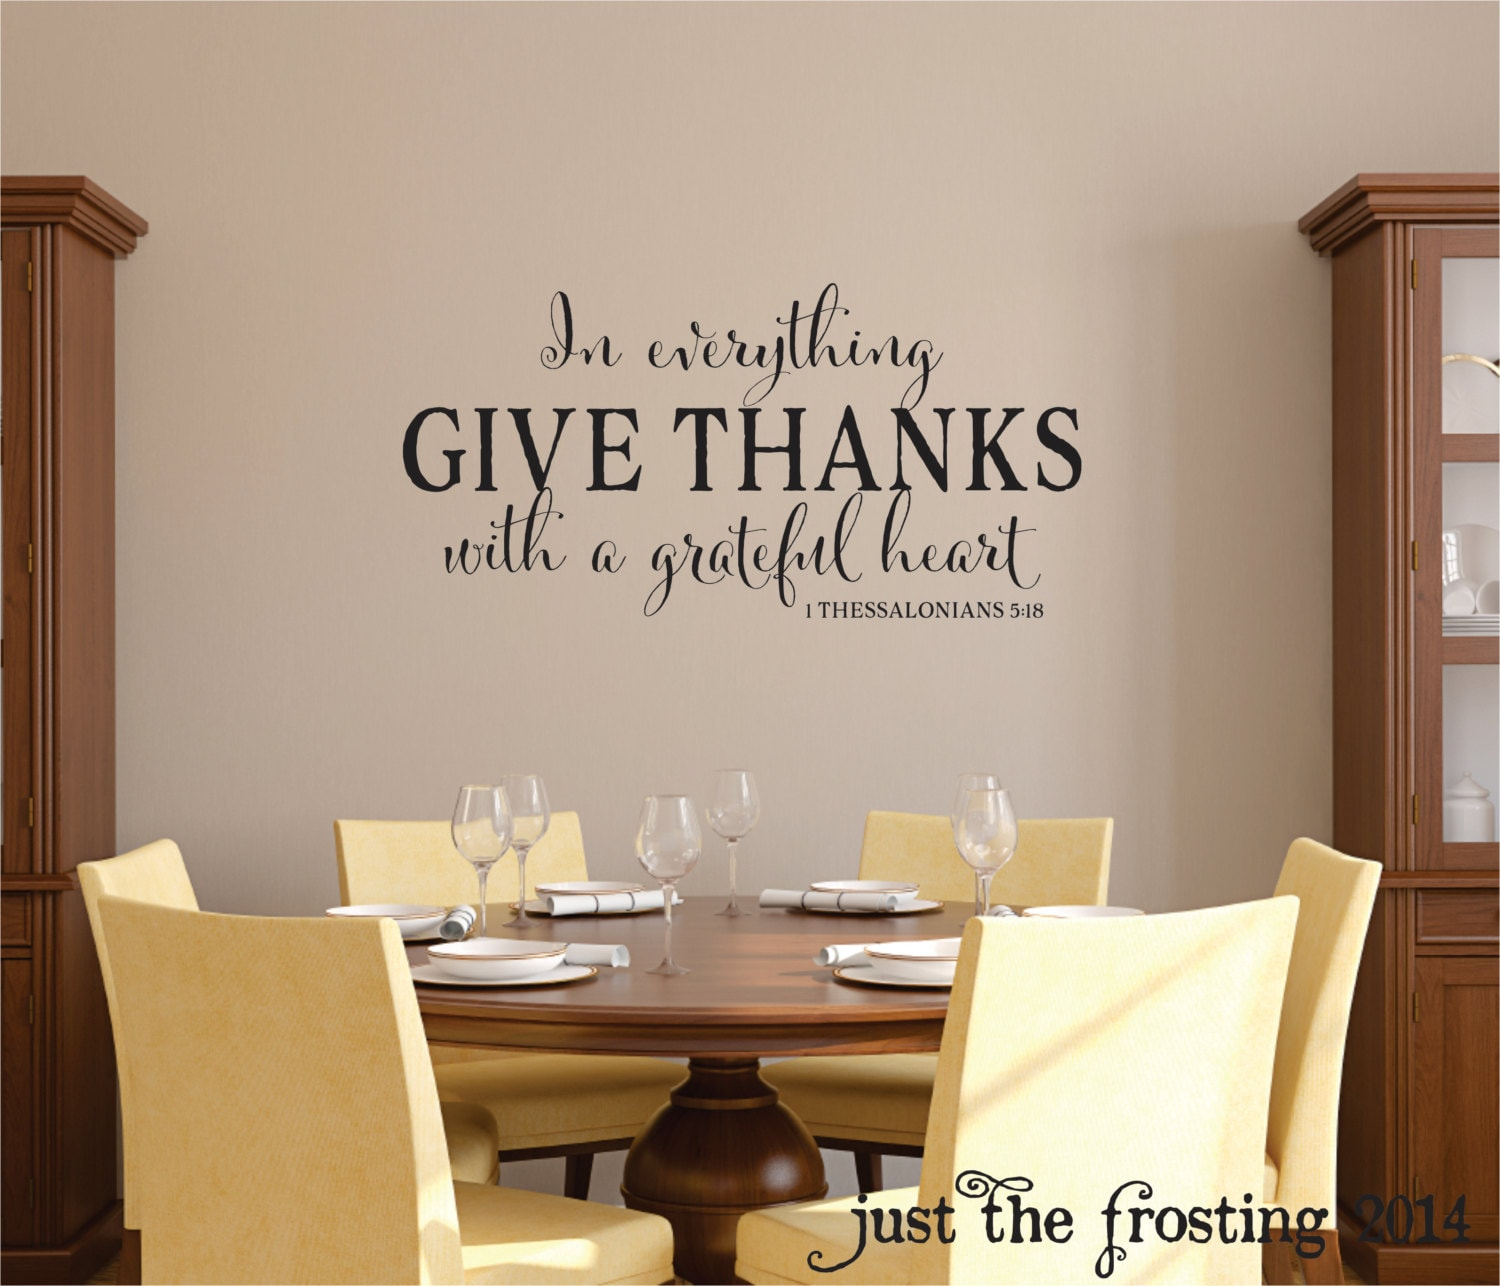 new in everything give thanks wall decal 1 thessalonians